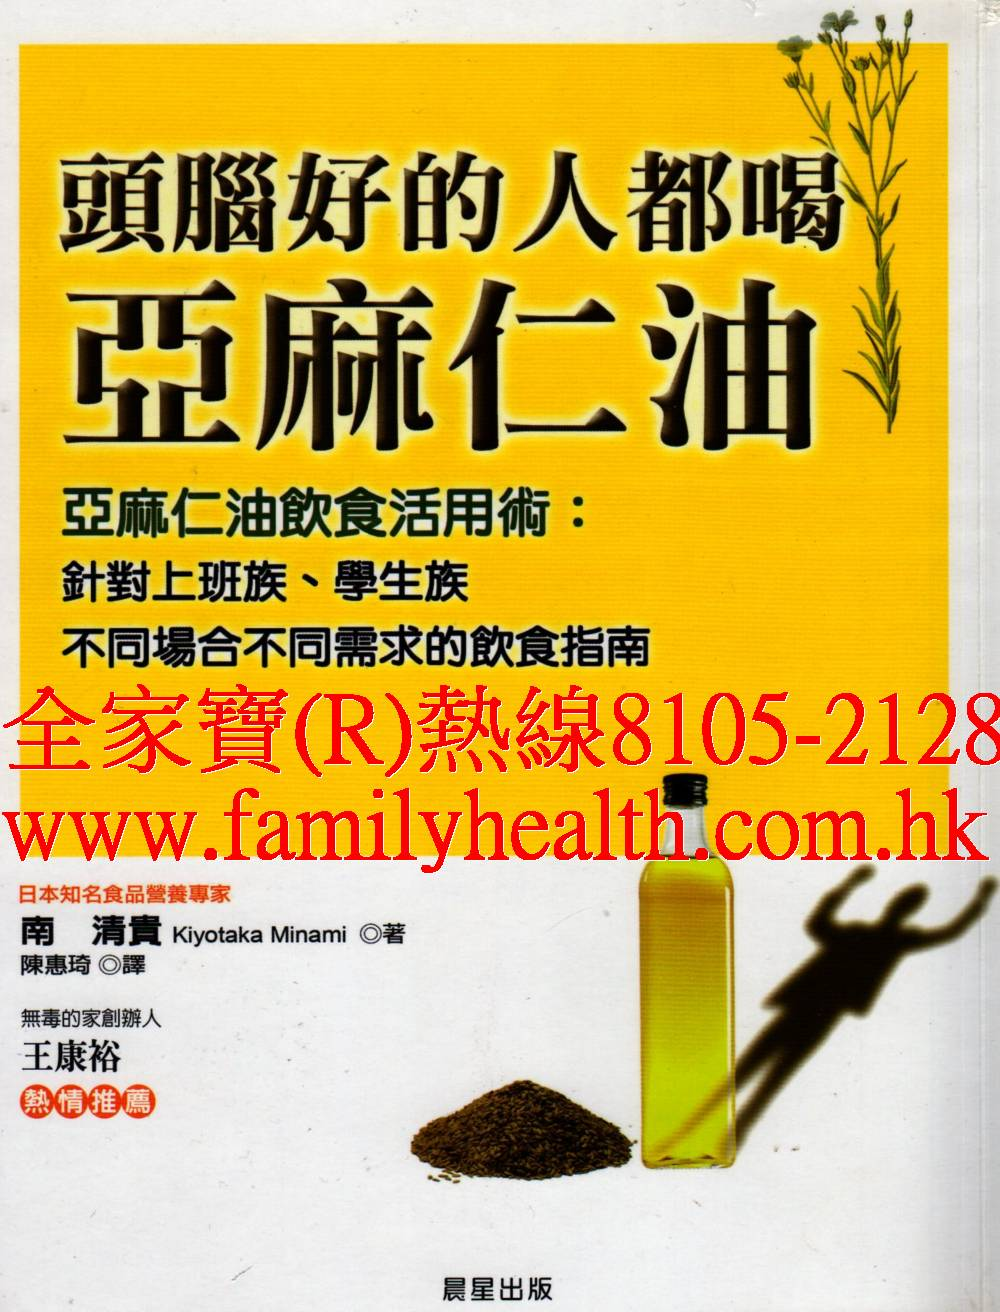 http://www.familyhealth.com.hk/files/full/974_0.jpg